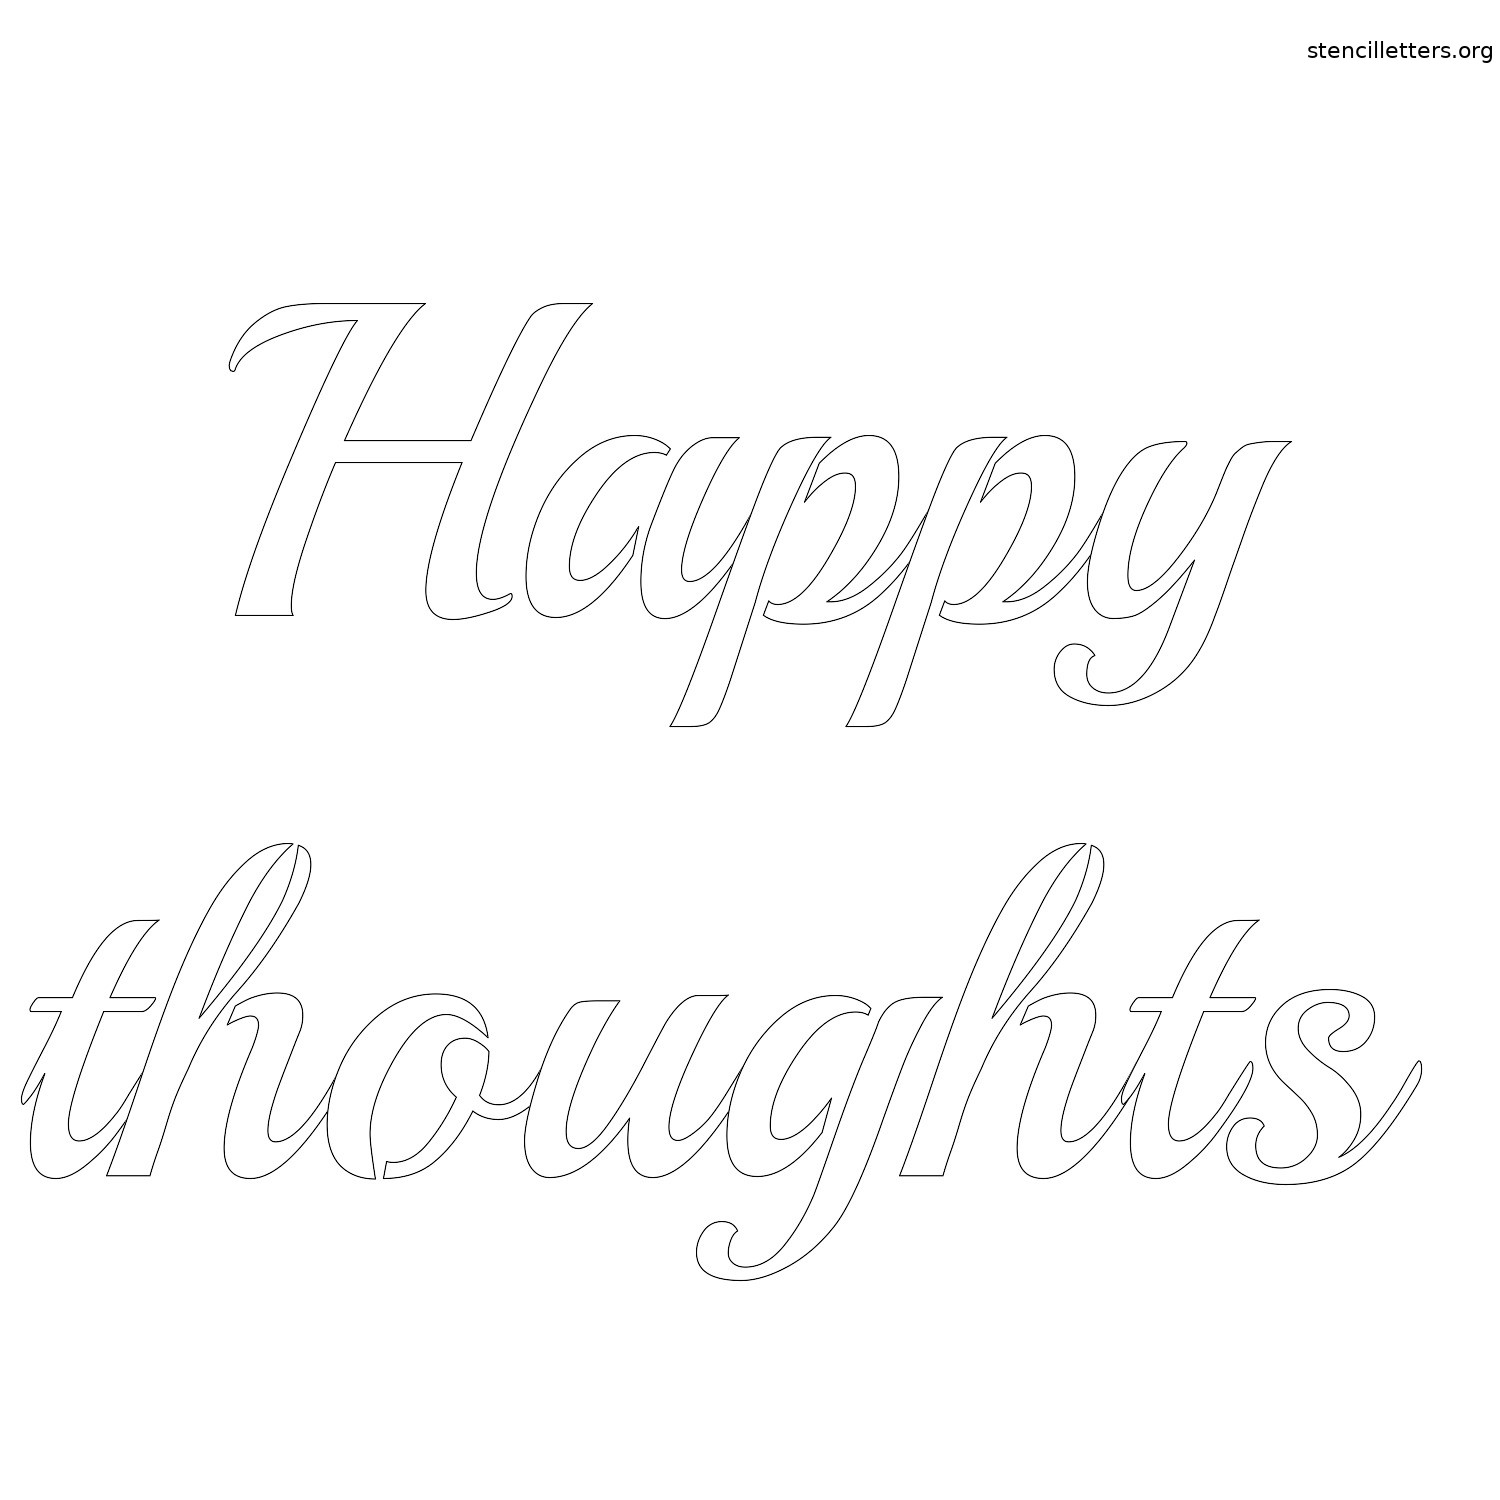 happy-thoughts-quote-stencil-outline.jpg